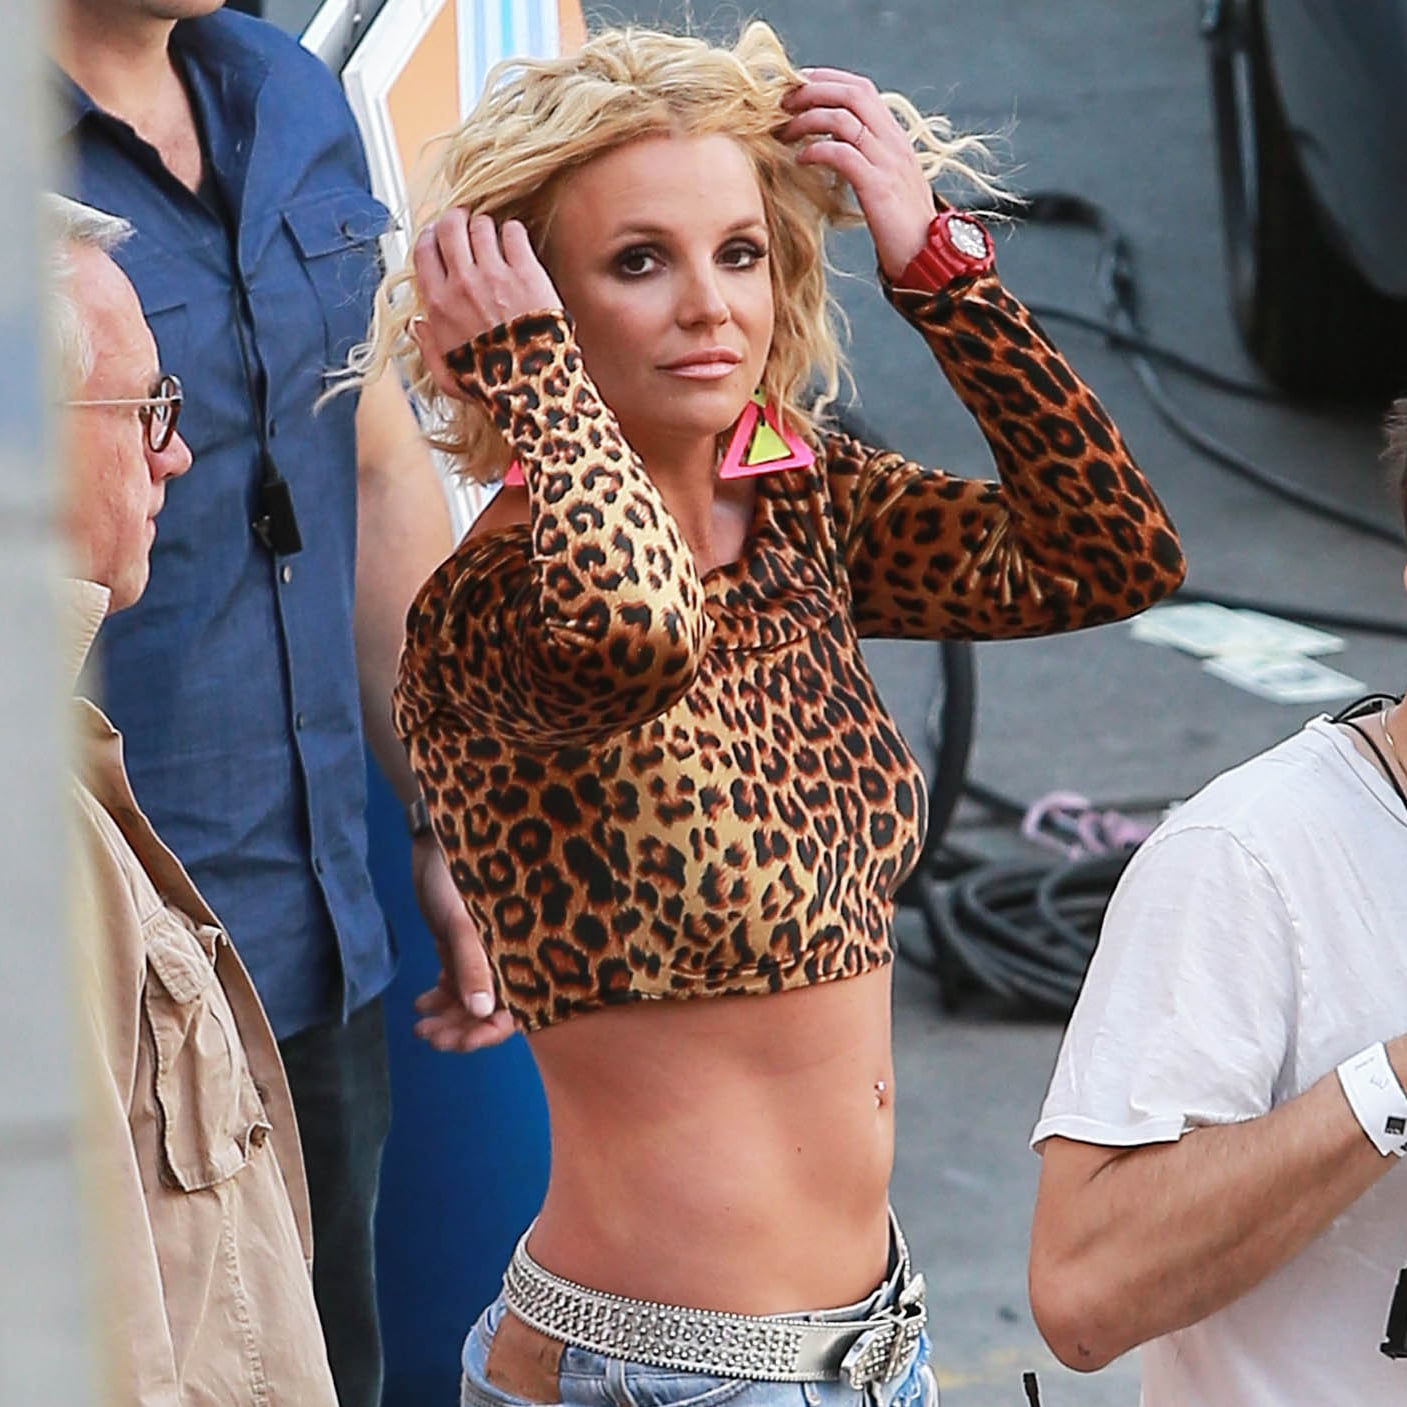 Britney spears and iggy azalea film the pretty girls video britney spears and iggy azalea film the pretty girls video popsugar celebrity voltagebd Image collections